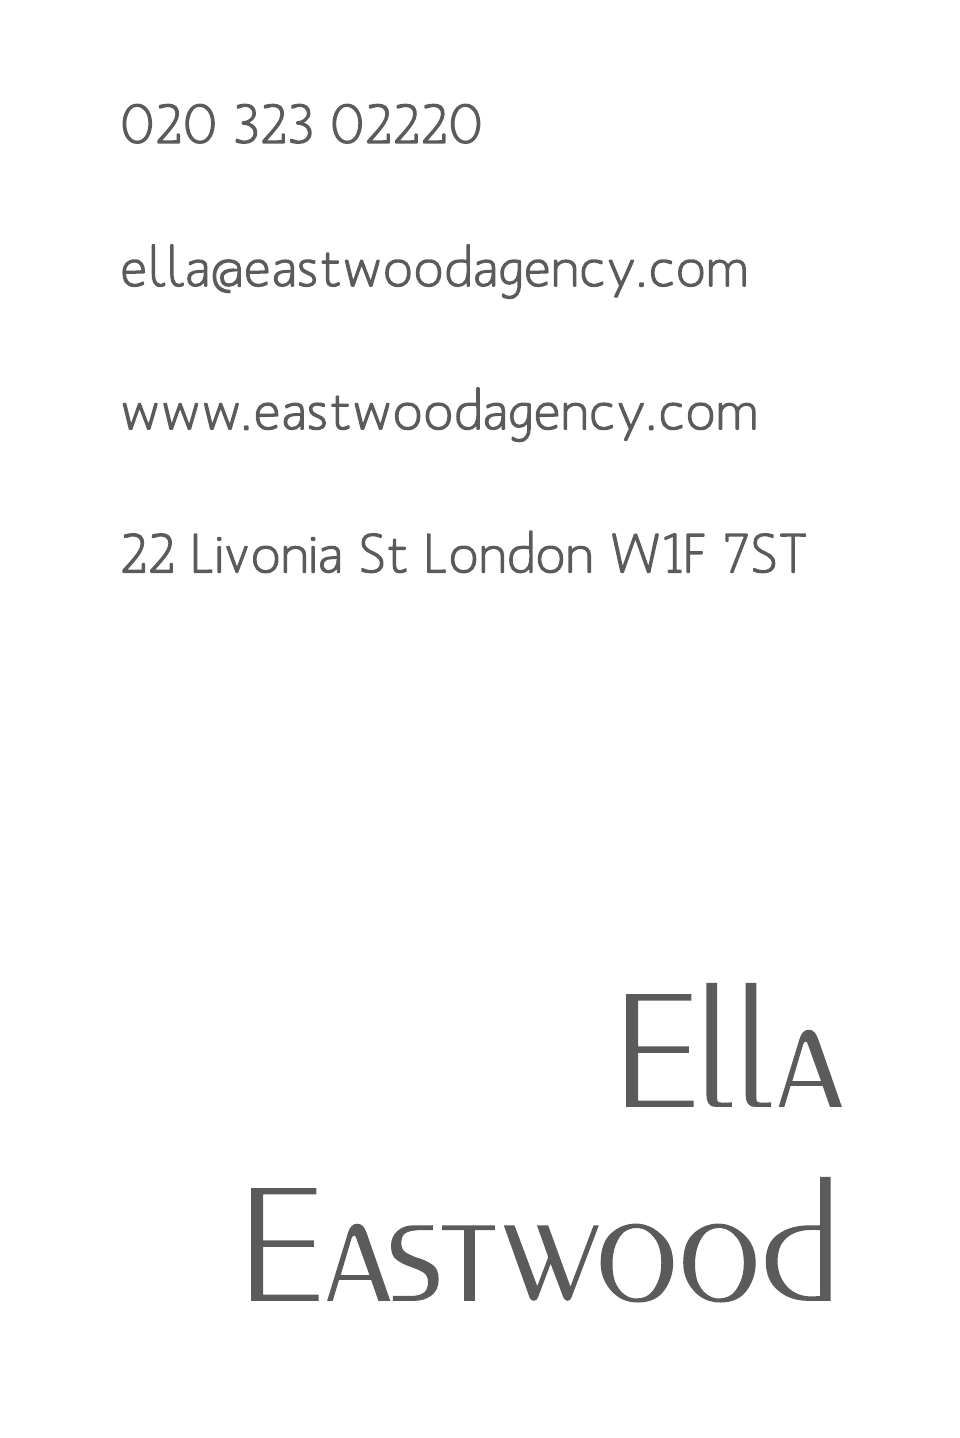 Eastwood Business Cards Ultra-Twin Foiled | Design, proof and buy online | Personalised Stationery